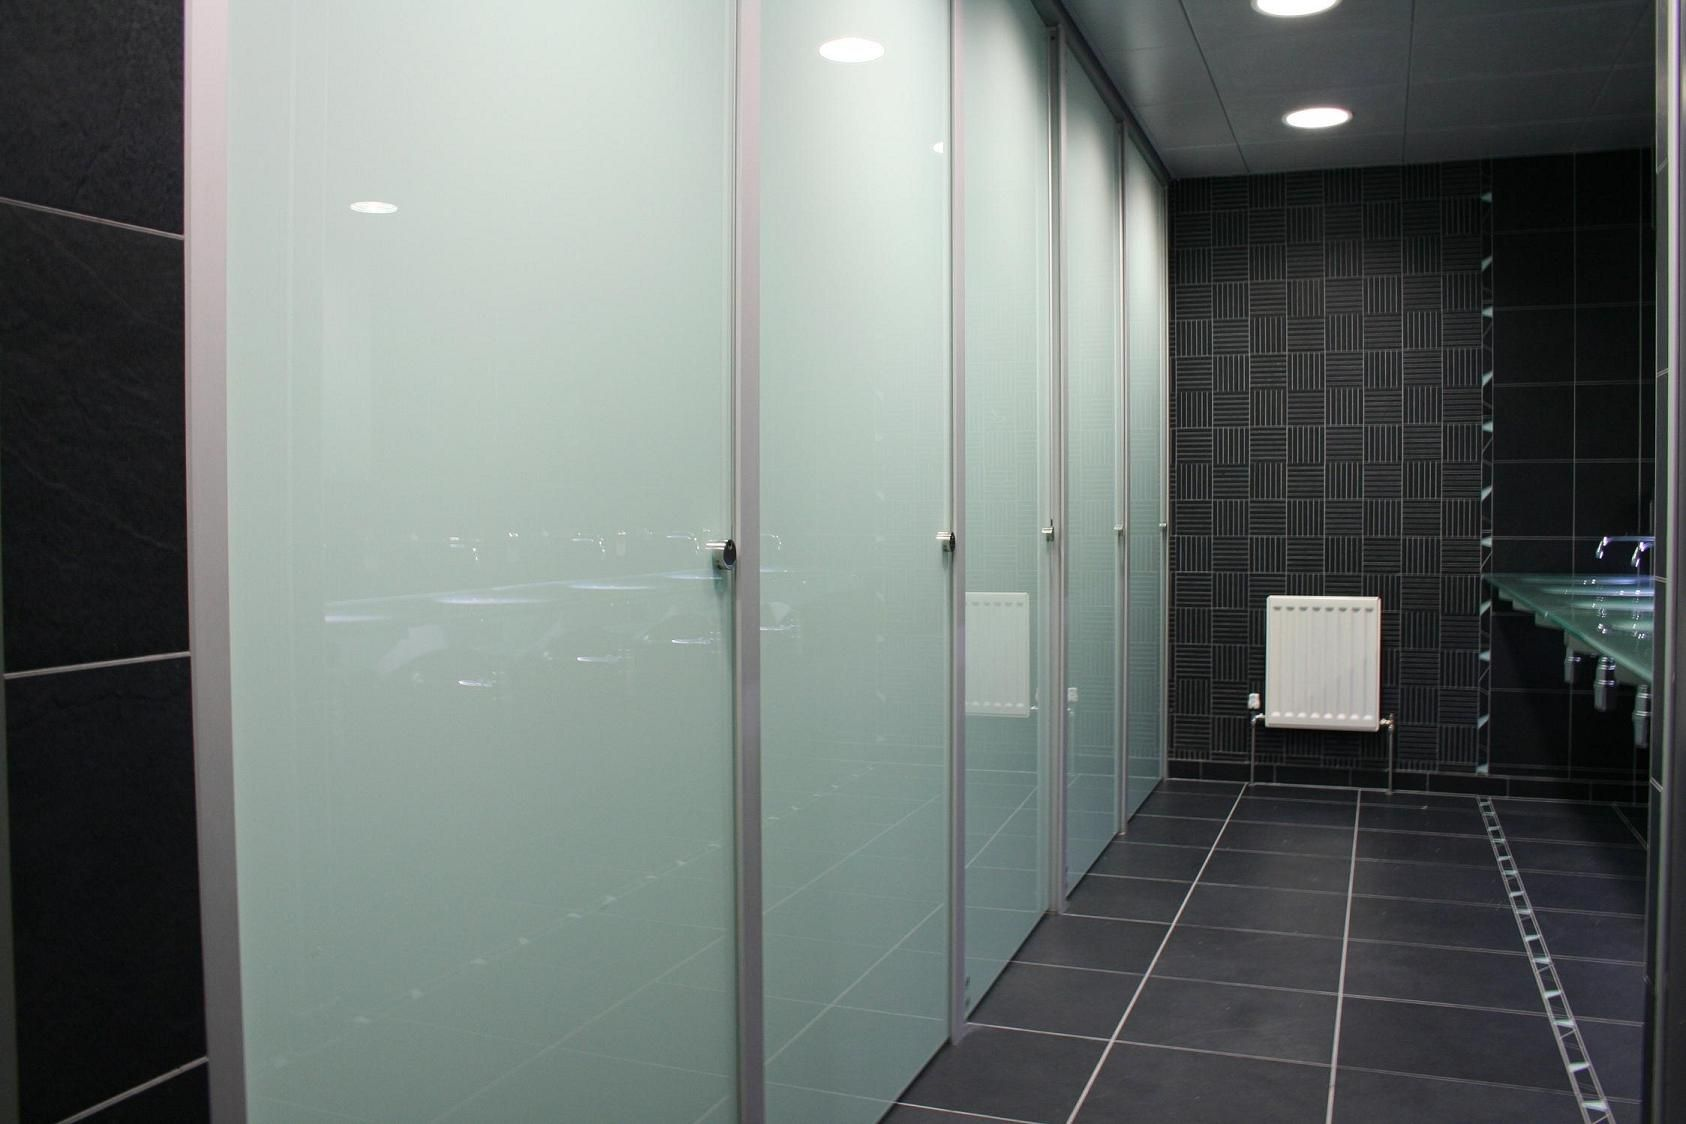 Bathroom dividers glass - Bathroom Partitions Inside Glass Toilet Cubicles Glass Toilet Partitions Boston Ma Contact Us